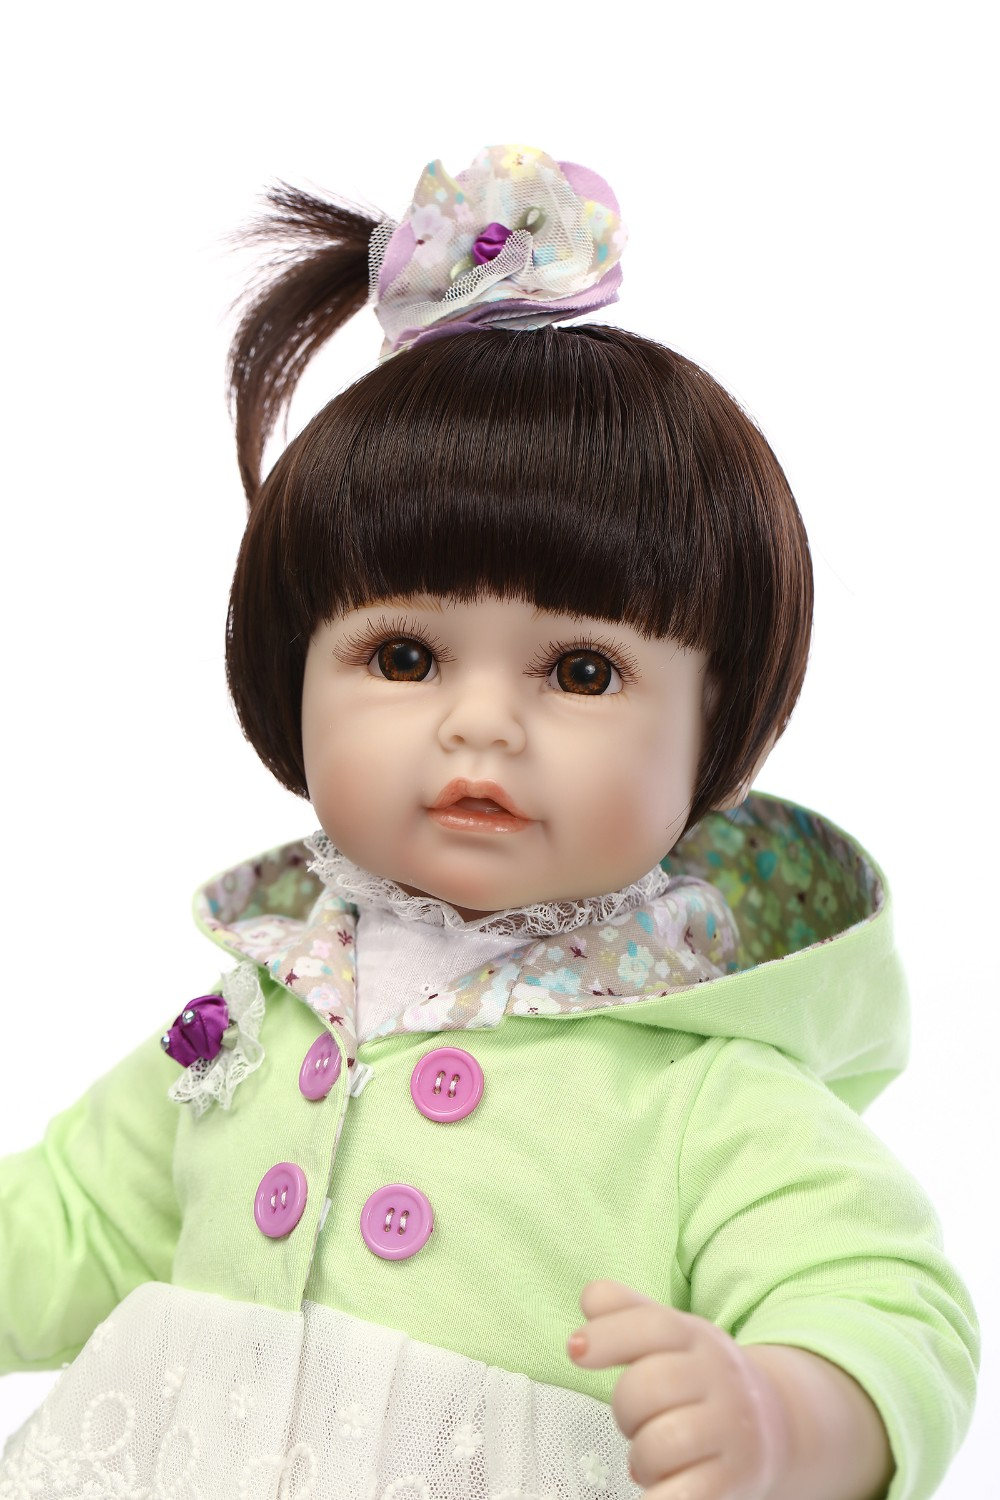 NPKCOLLECTION reborn doll with soft real gentle touch 20inch doll silicone vinyl lifelike newborn baby Christmas Gift baby alive npkcollection reborn doll vinyl silicone soft real gentle touch doll beautiful gift for kis on birthday and christmas